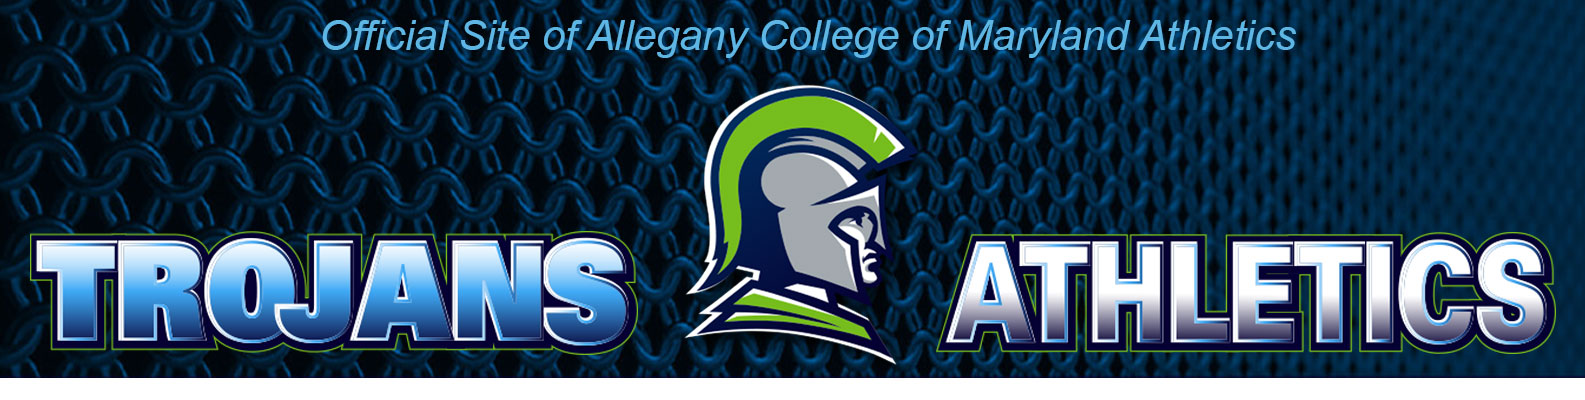 Athletics at Allegany College of Maryland Trojan Banner